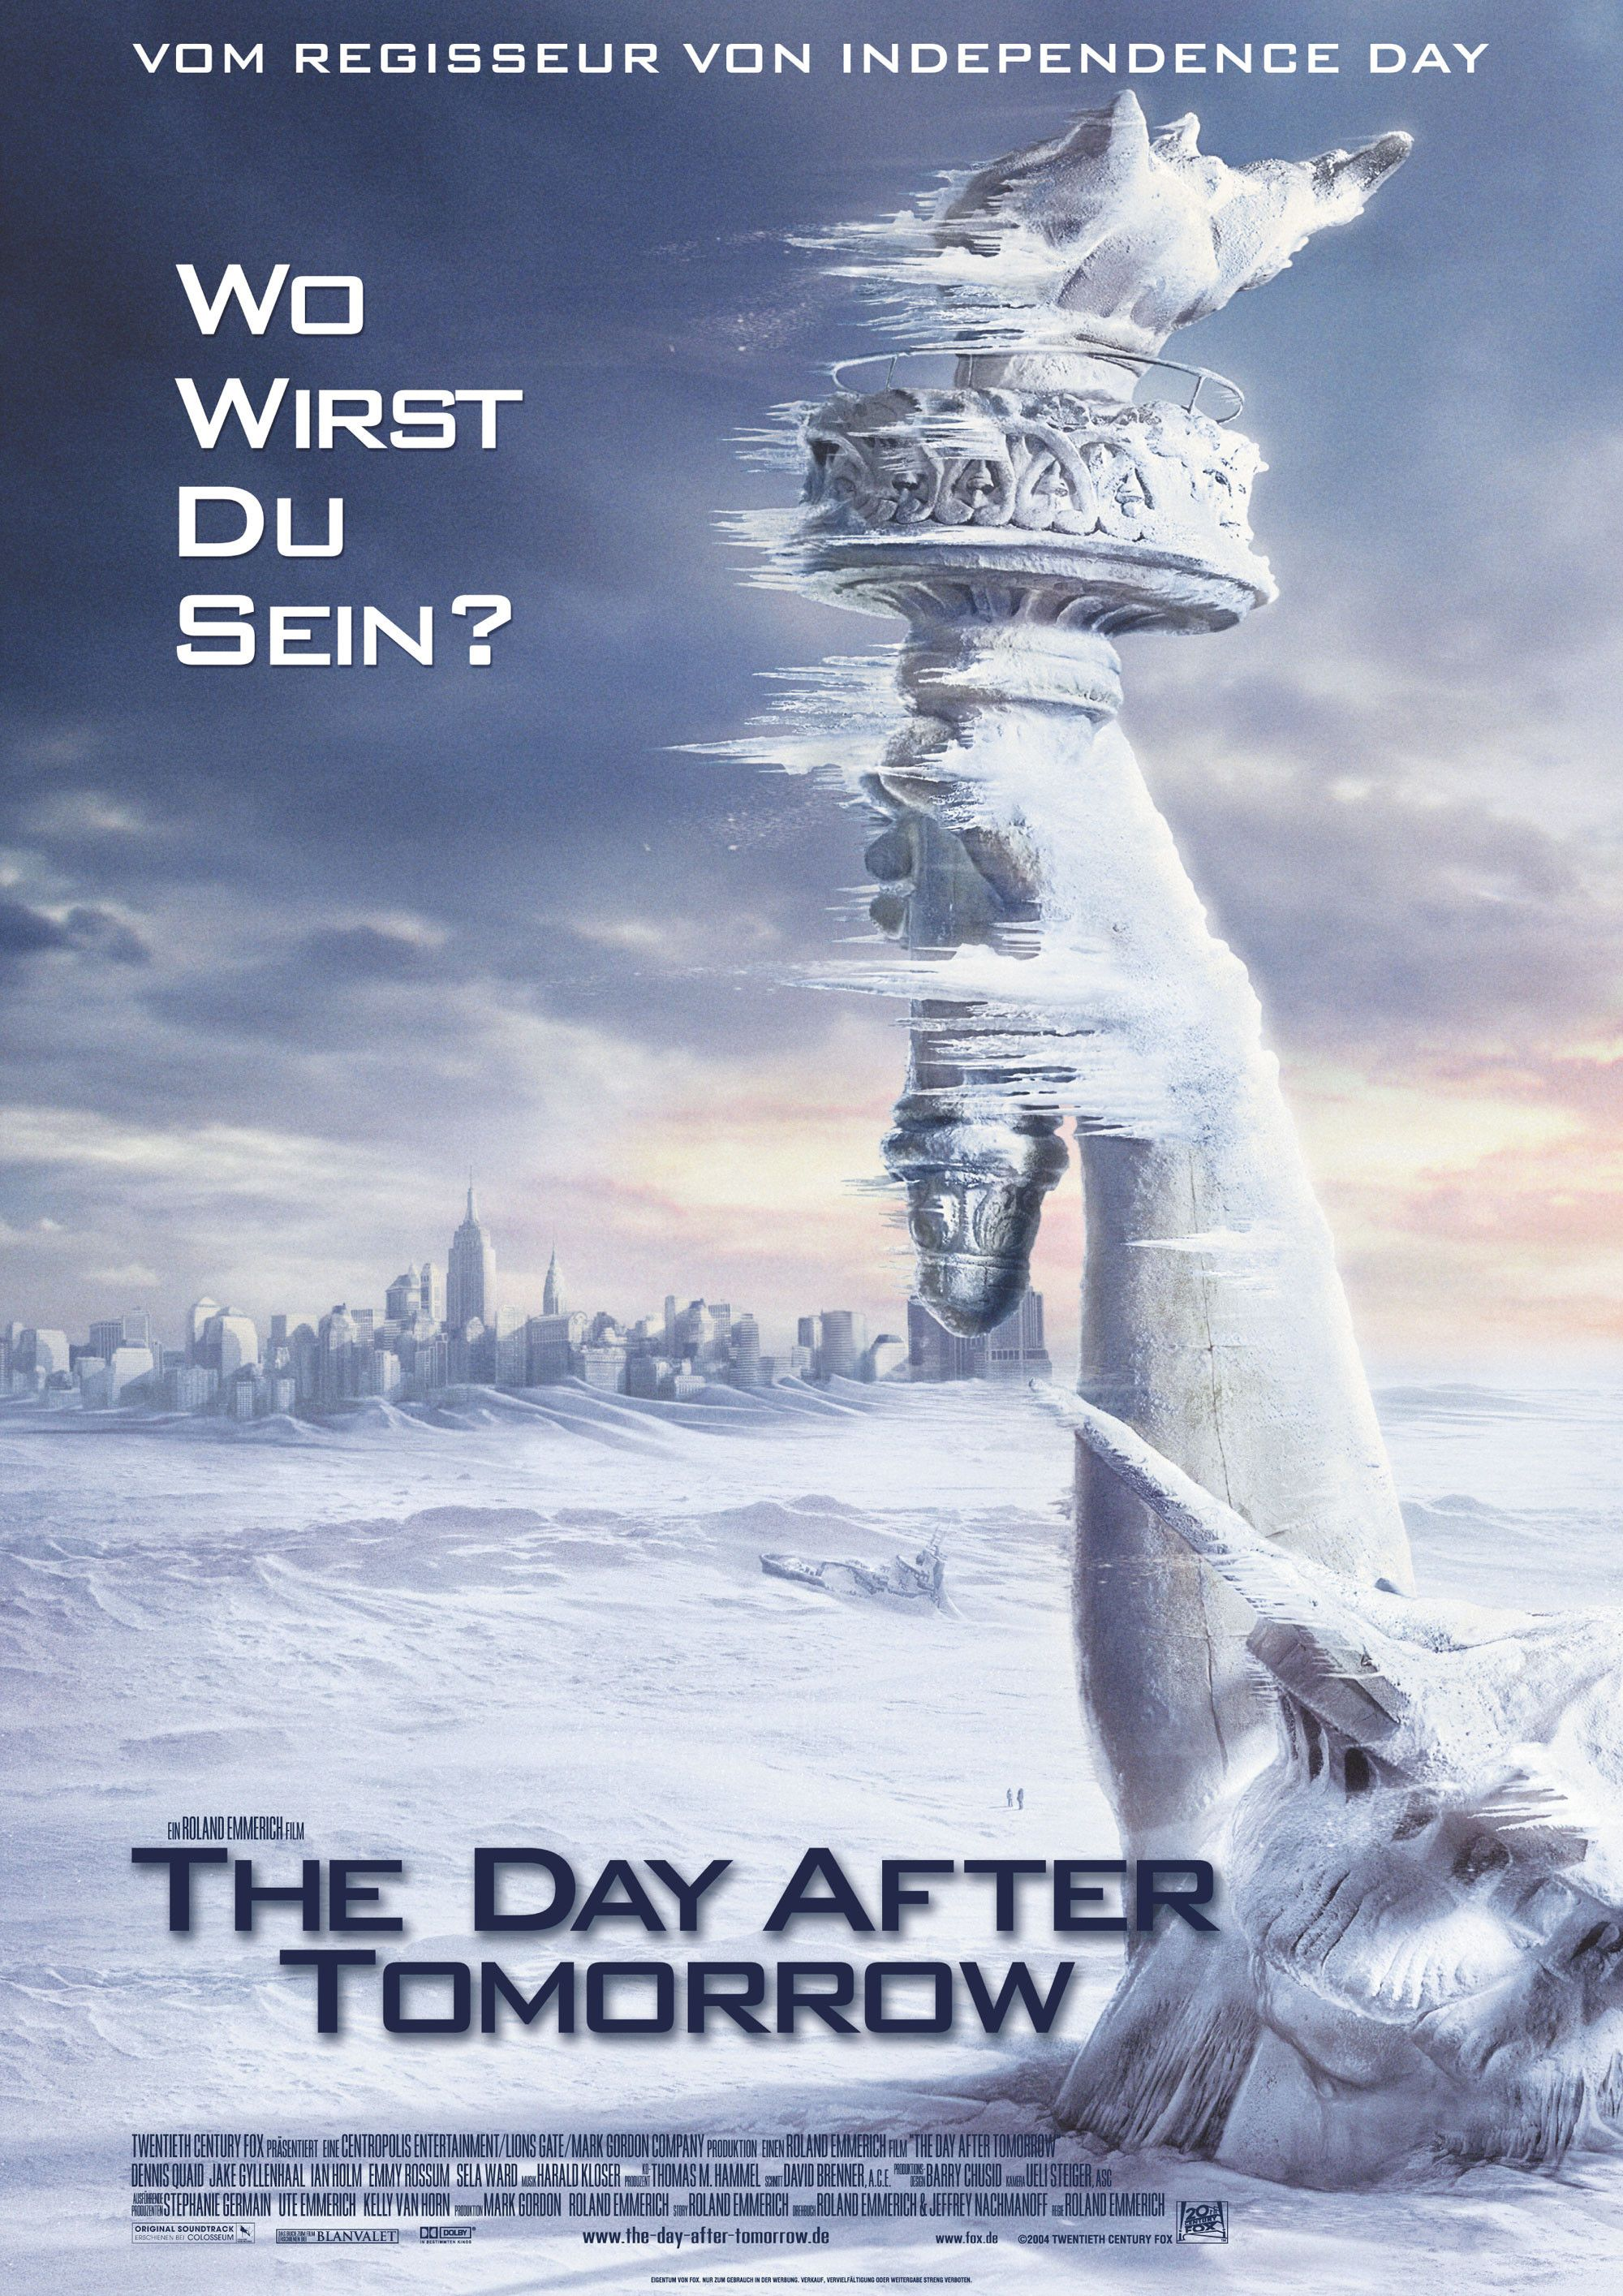 The Day After Tomorrow Películas De Aventuras Peliculas Carteles De Cine